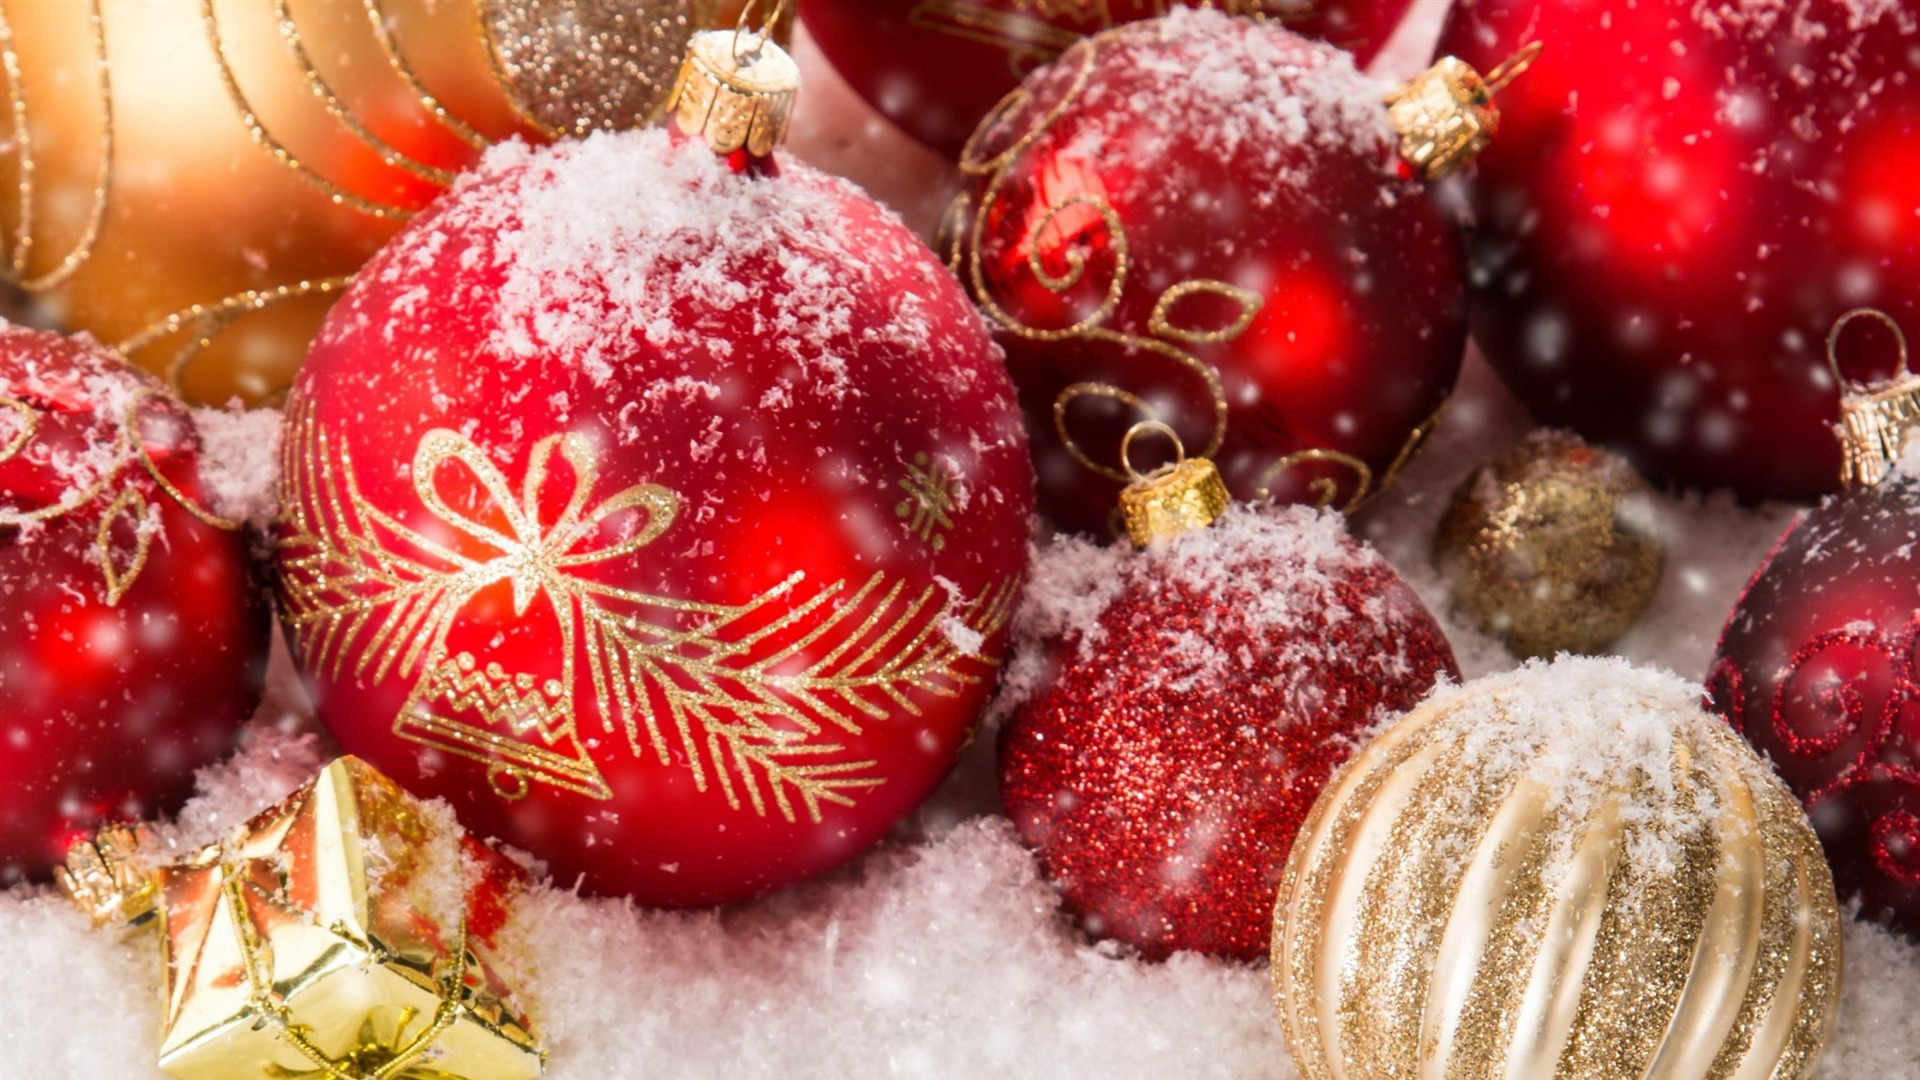 Christmas ornaments-Festival Wallpaper 1920x1080